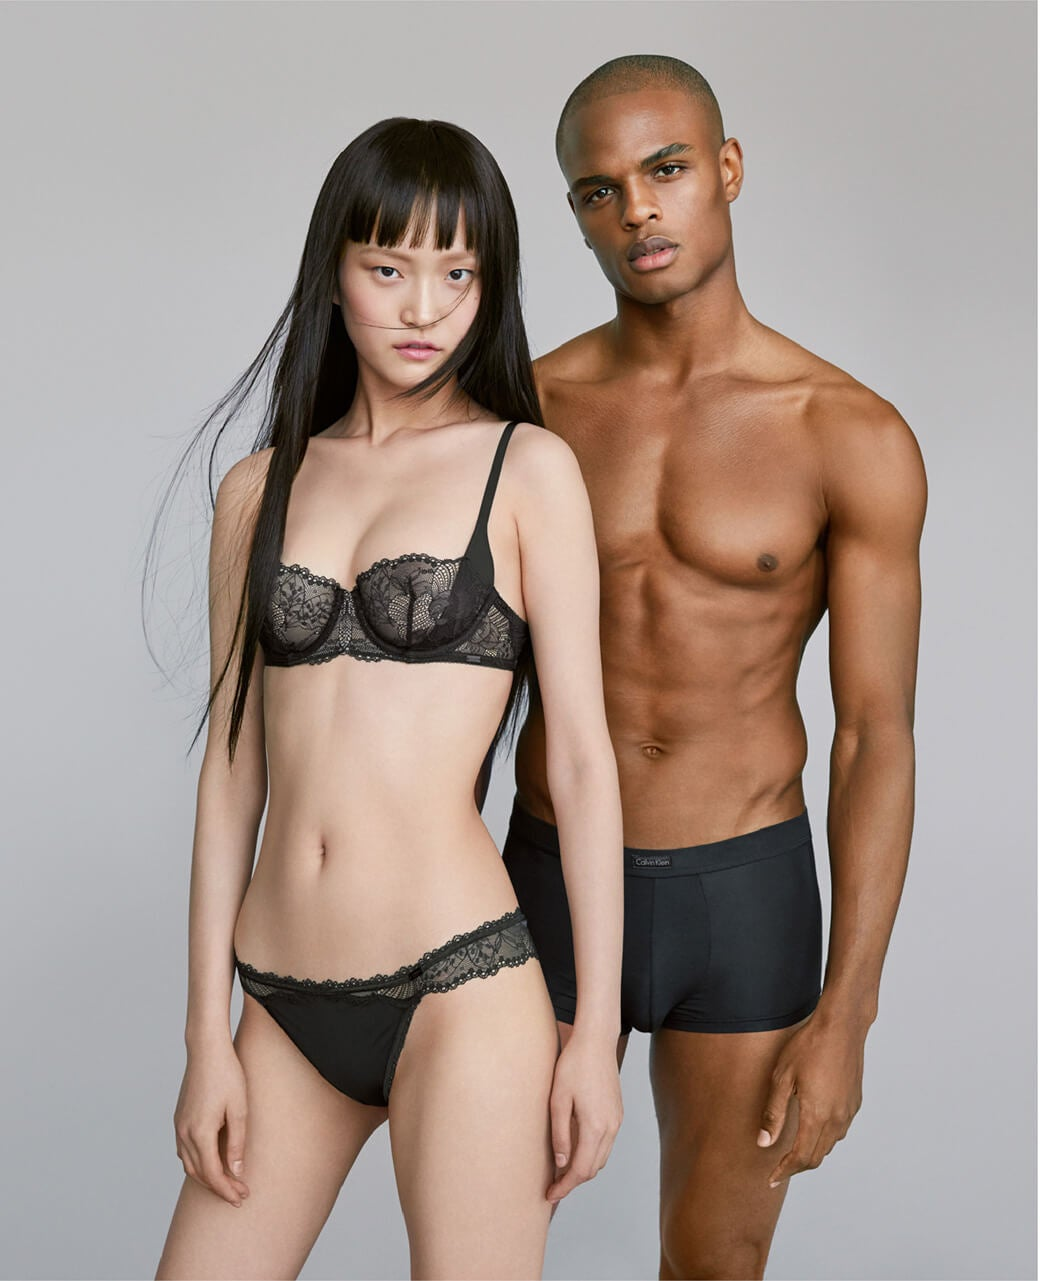 female + male model in underwear